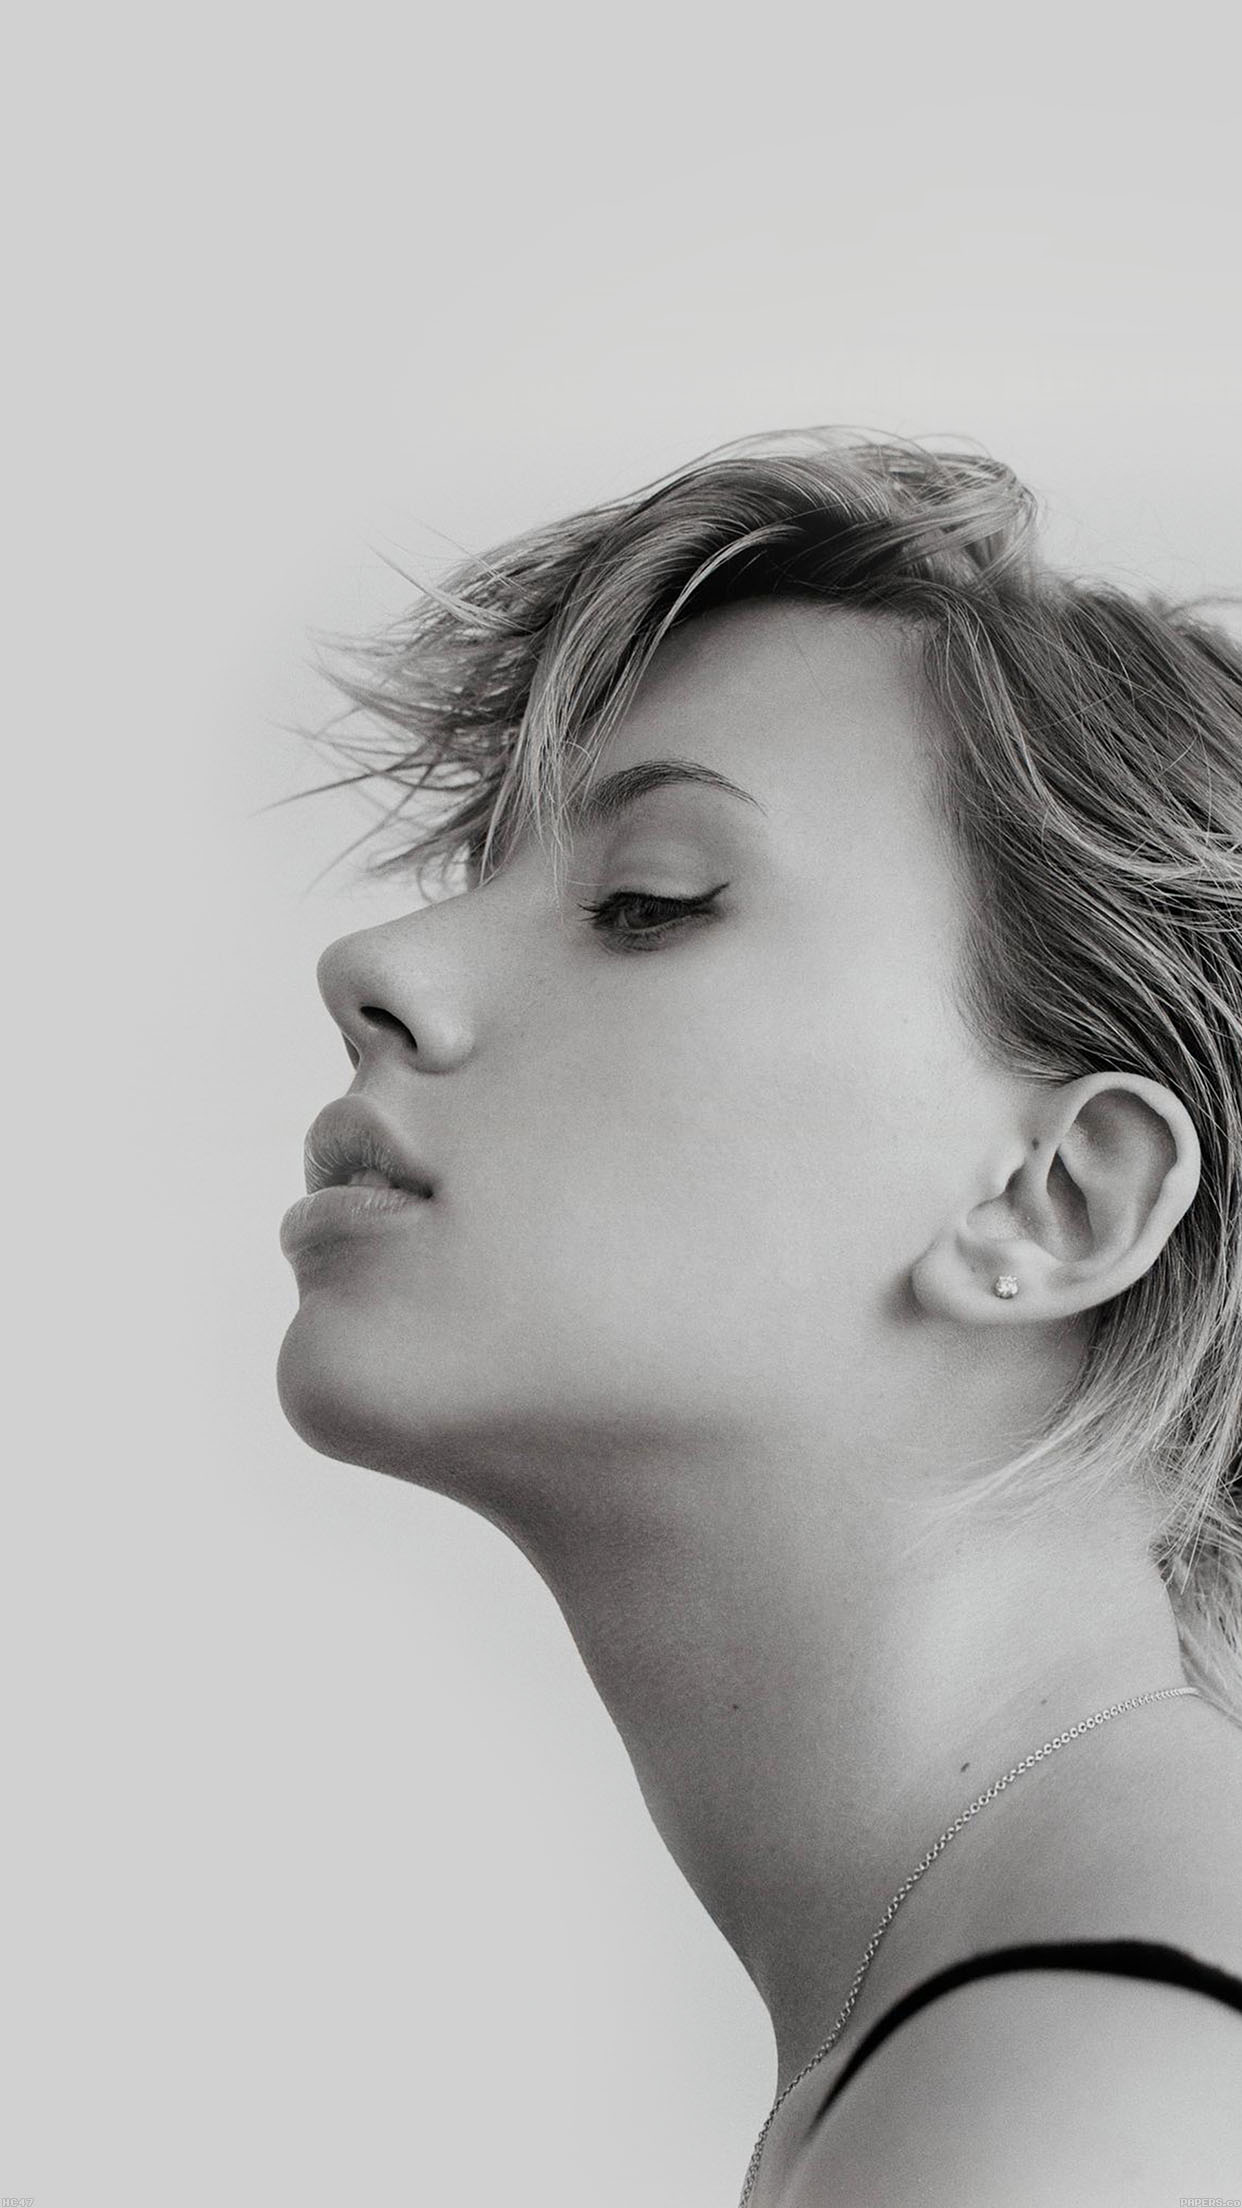 iphone7papers - hc47-scarlett-johansson-celebrity-sexy